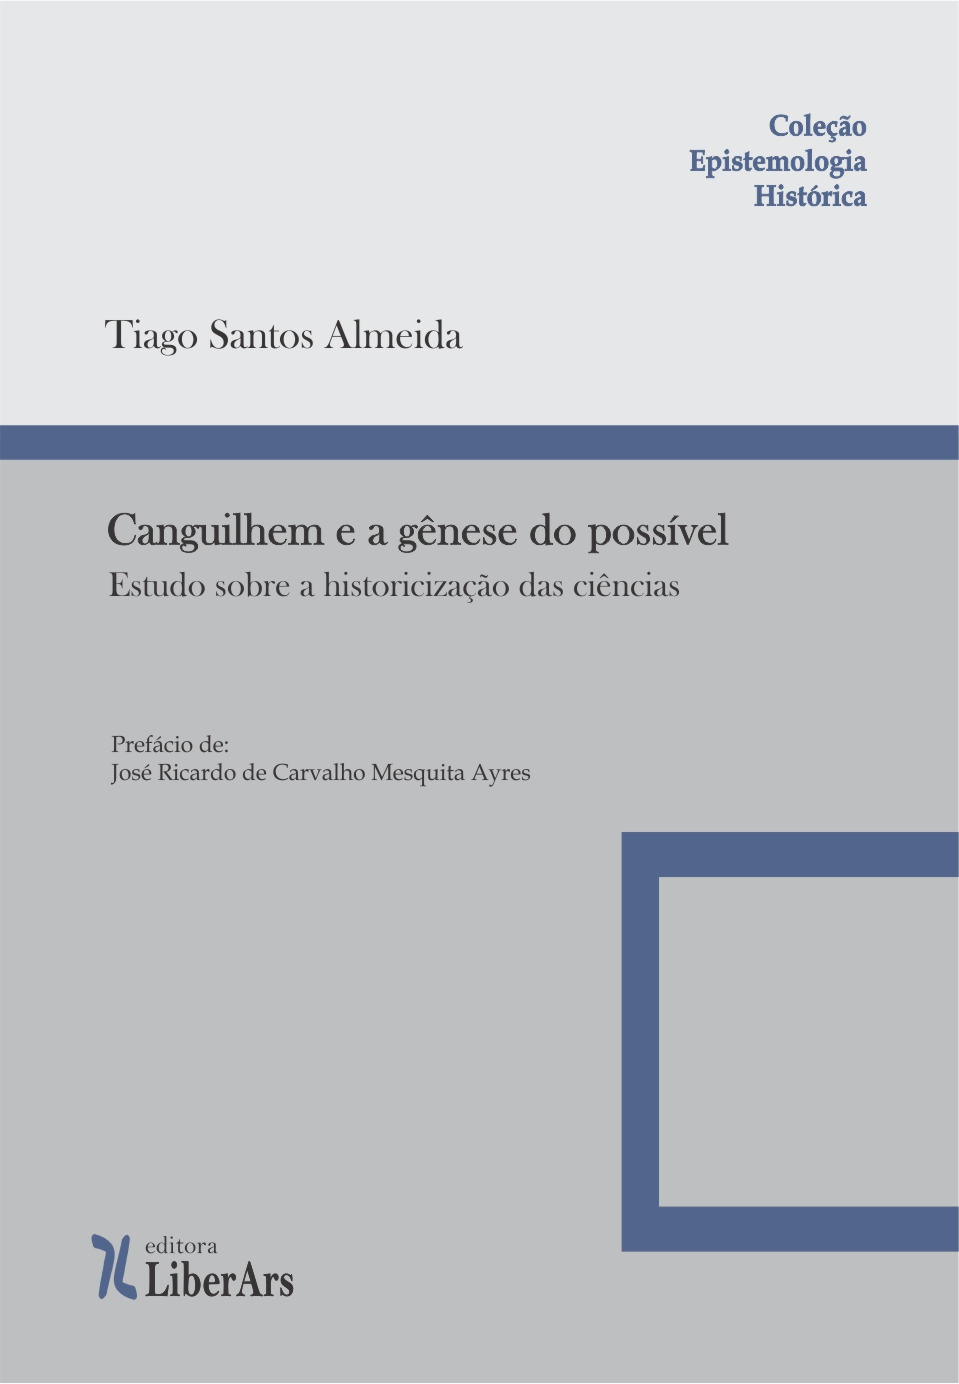 canguilhem e a genese do possivel capa